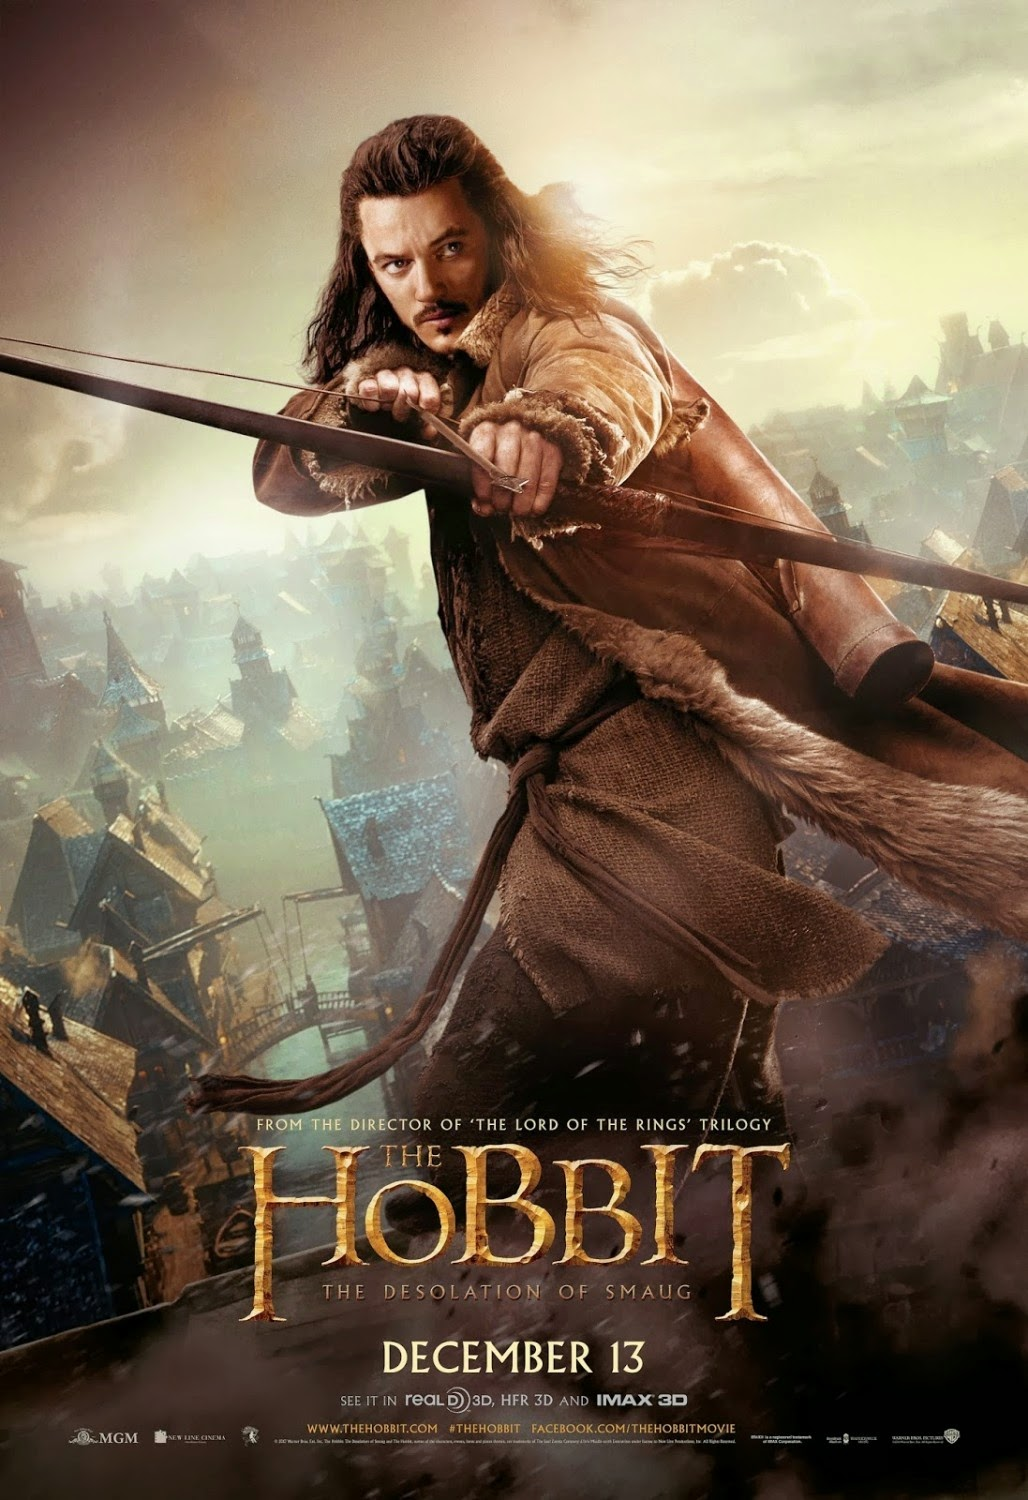 Hobbit gmail theme - Synopsis Trailer Release The Hobbit 3 Battle Of The Five Armies